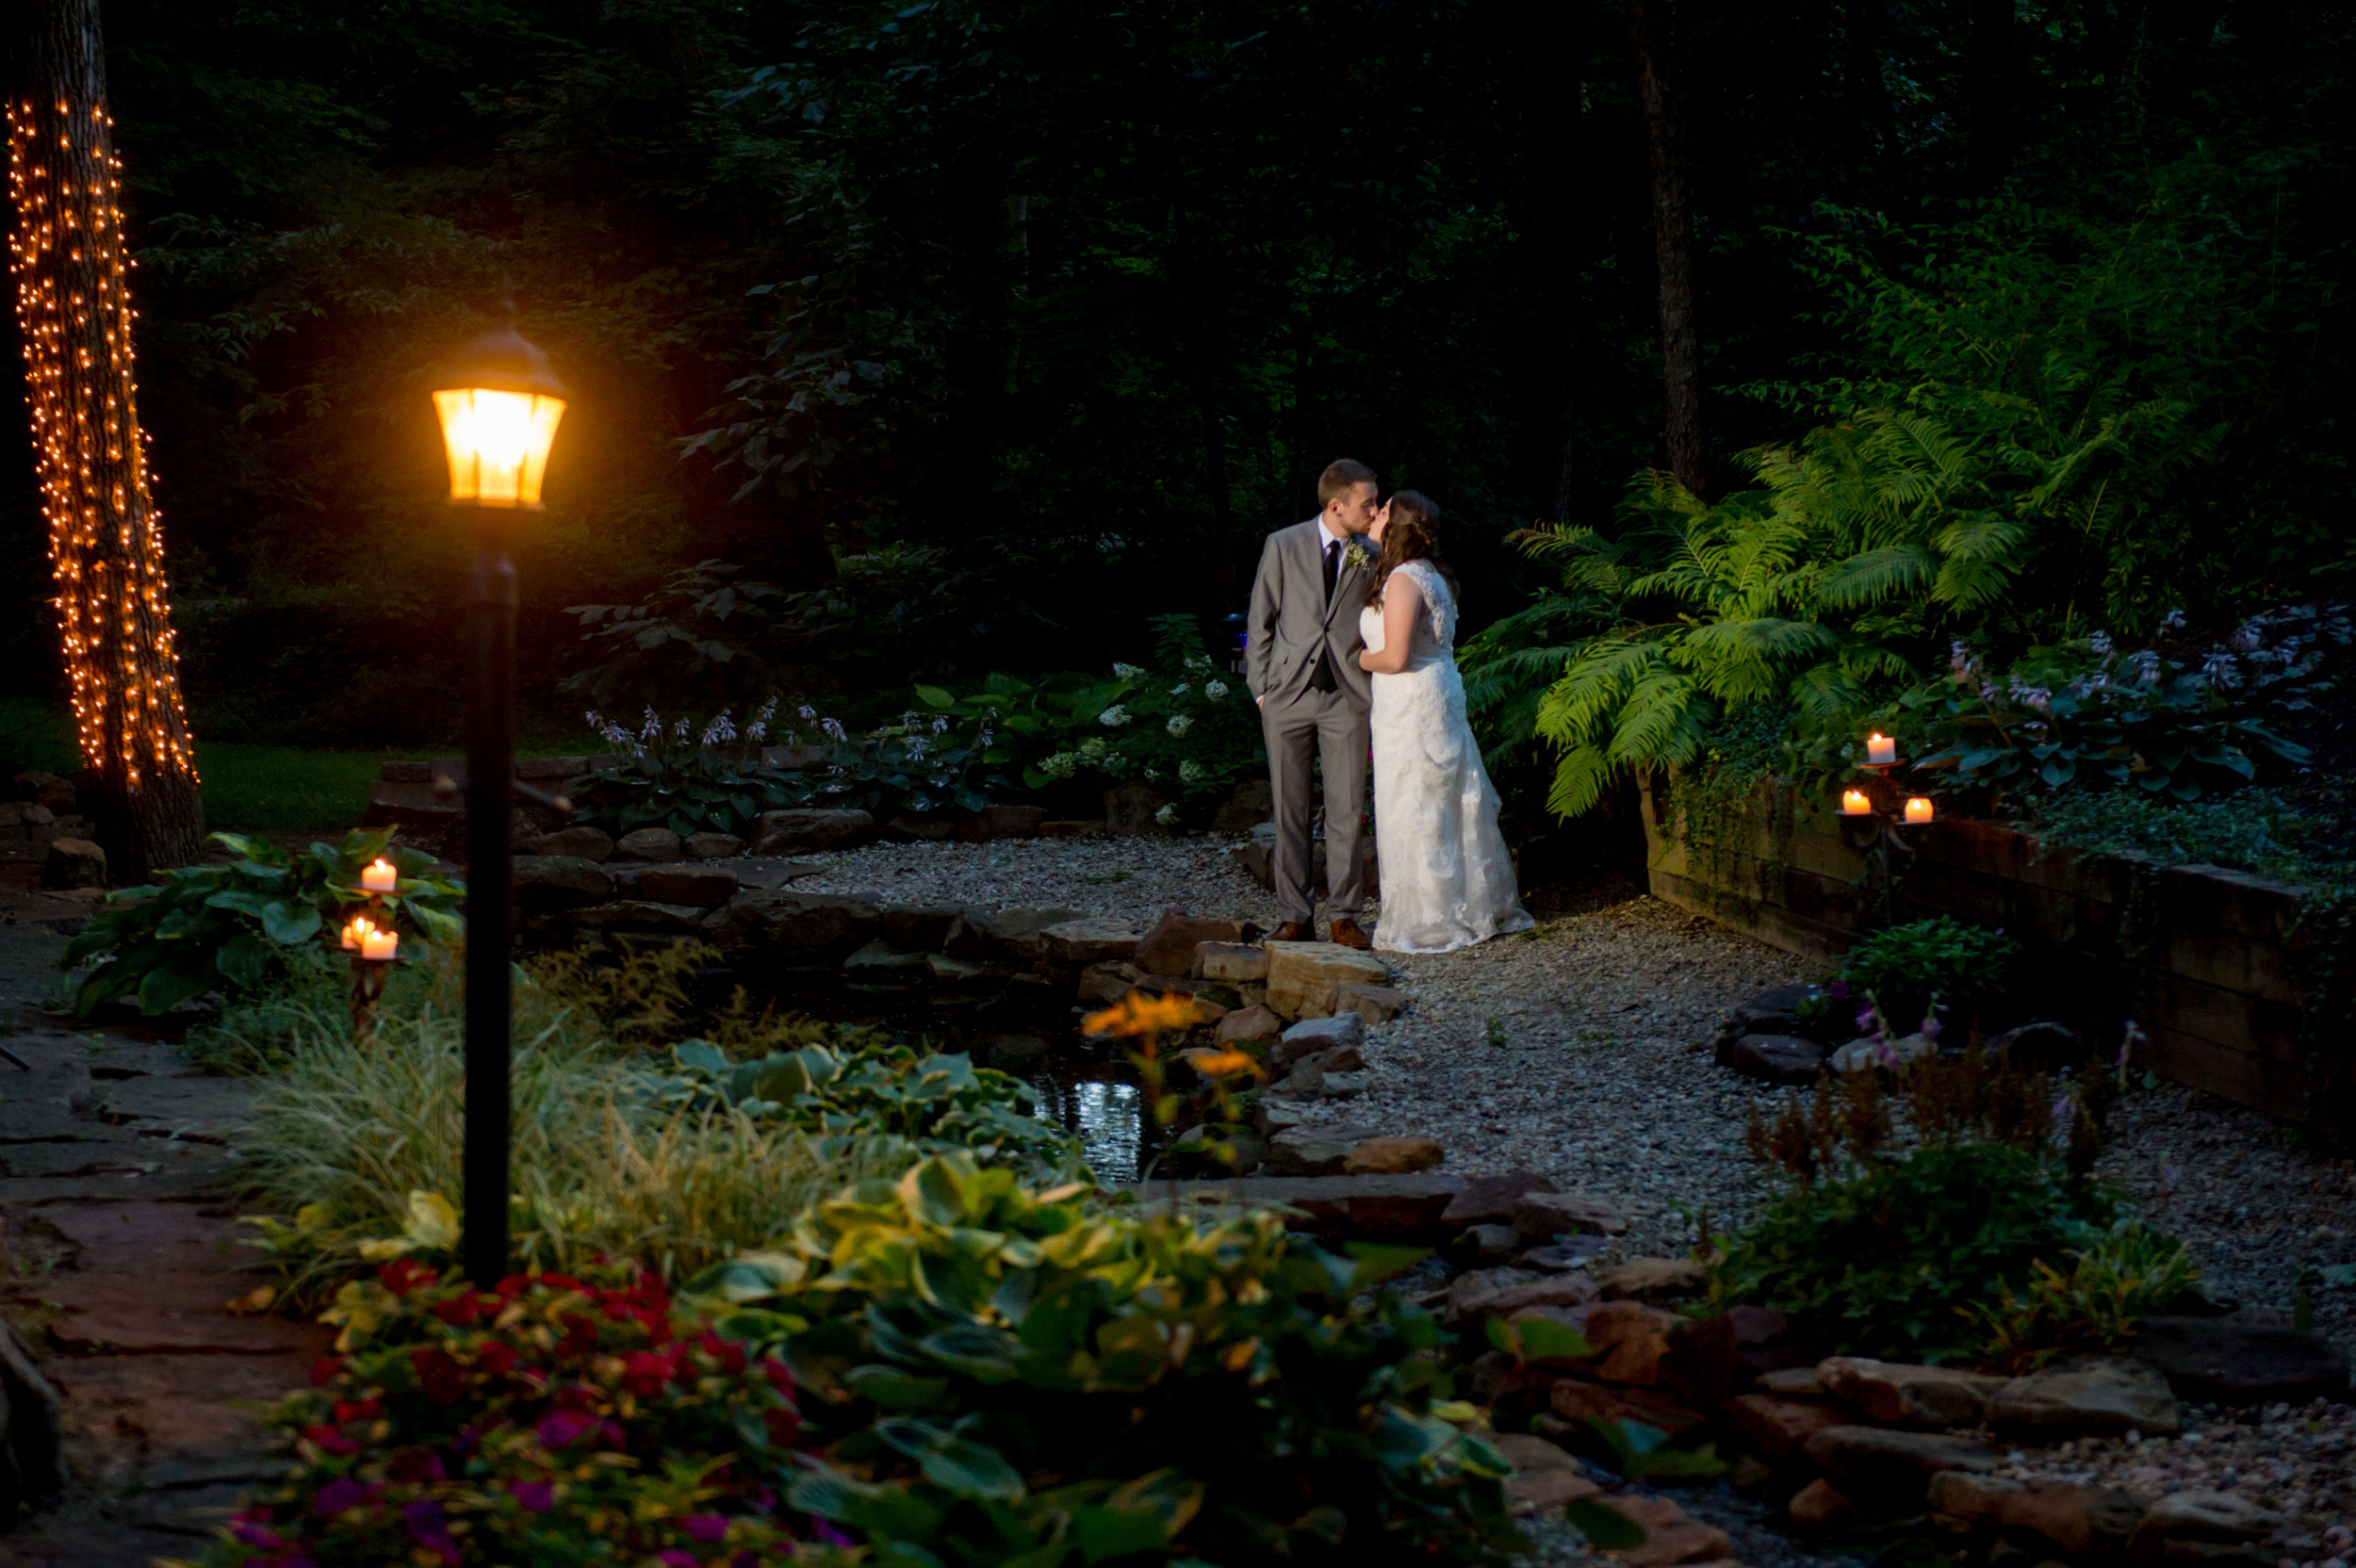 Avon Gardens by candlelight